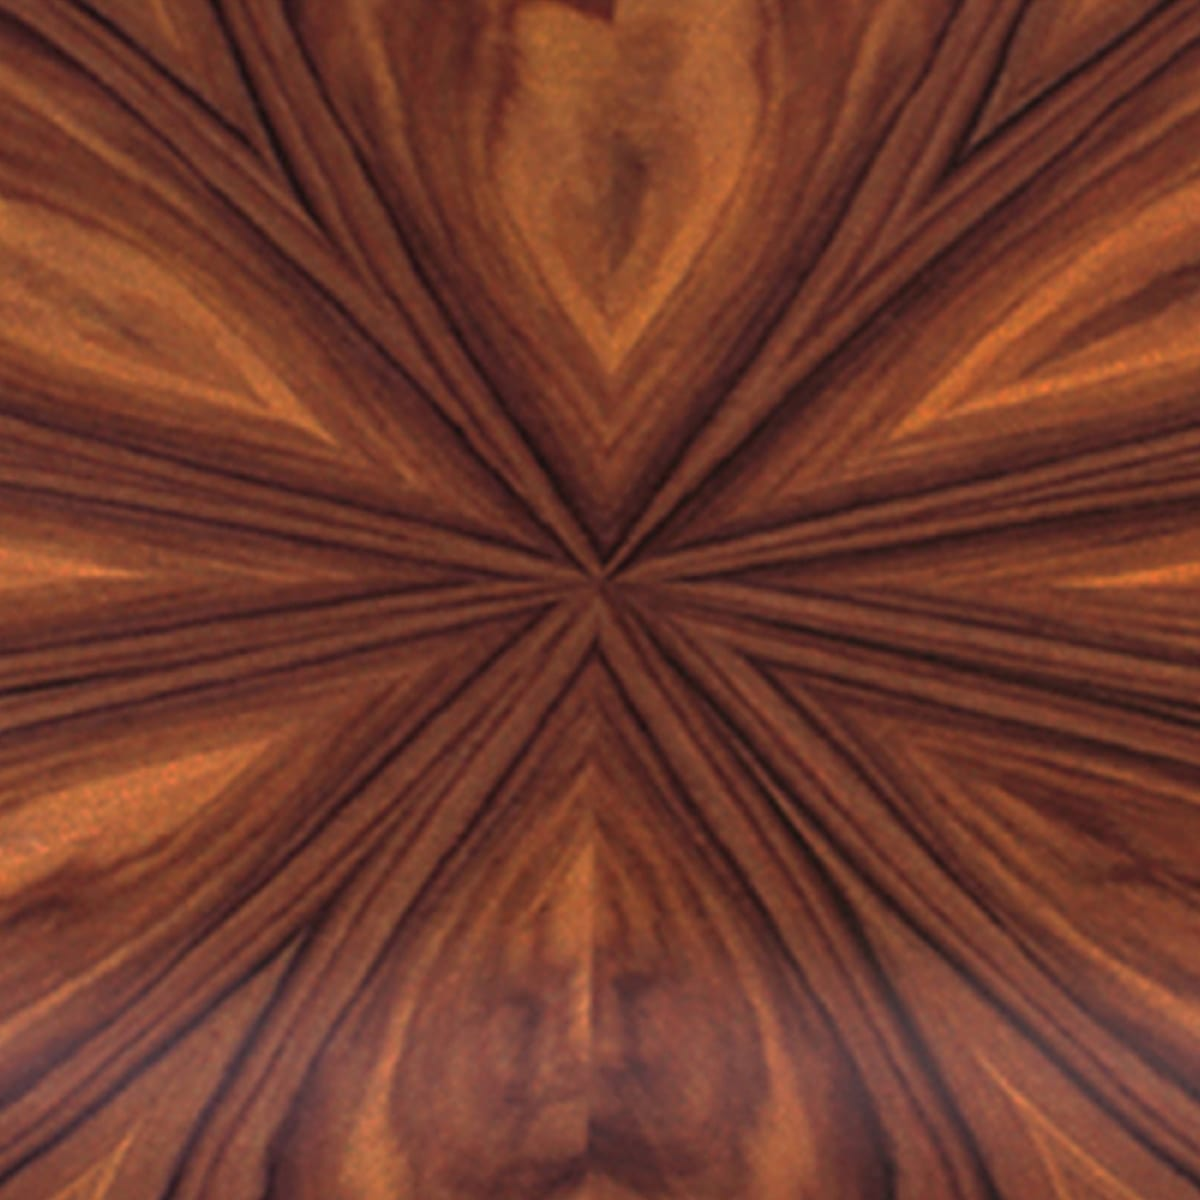 ironwood radia matched - wood veneer